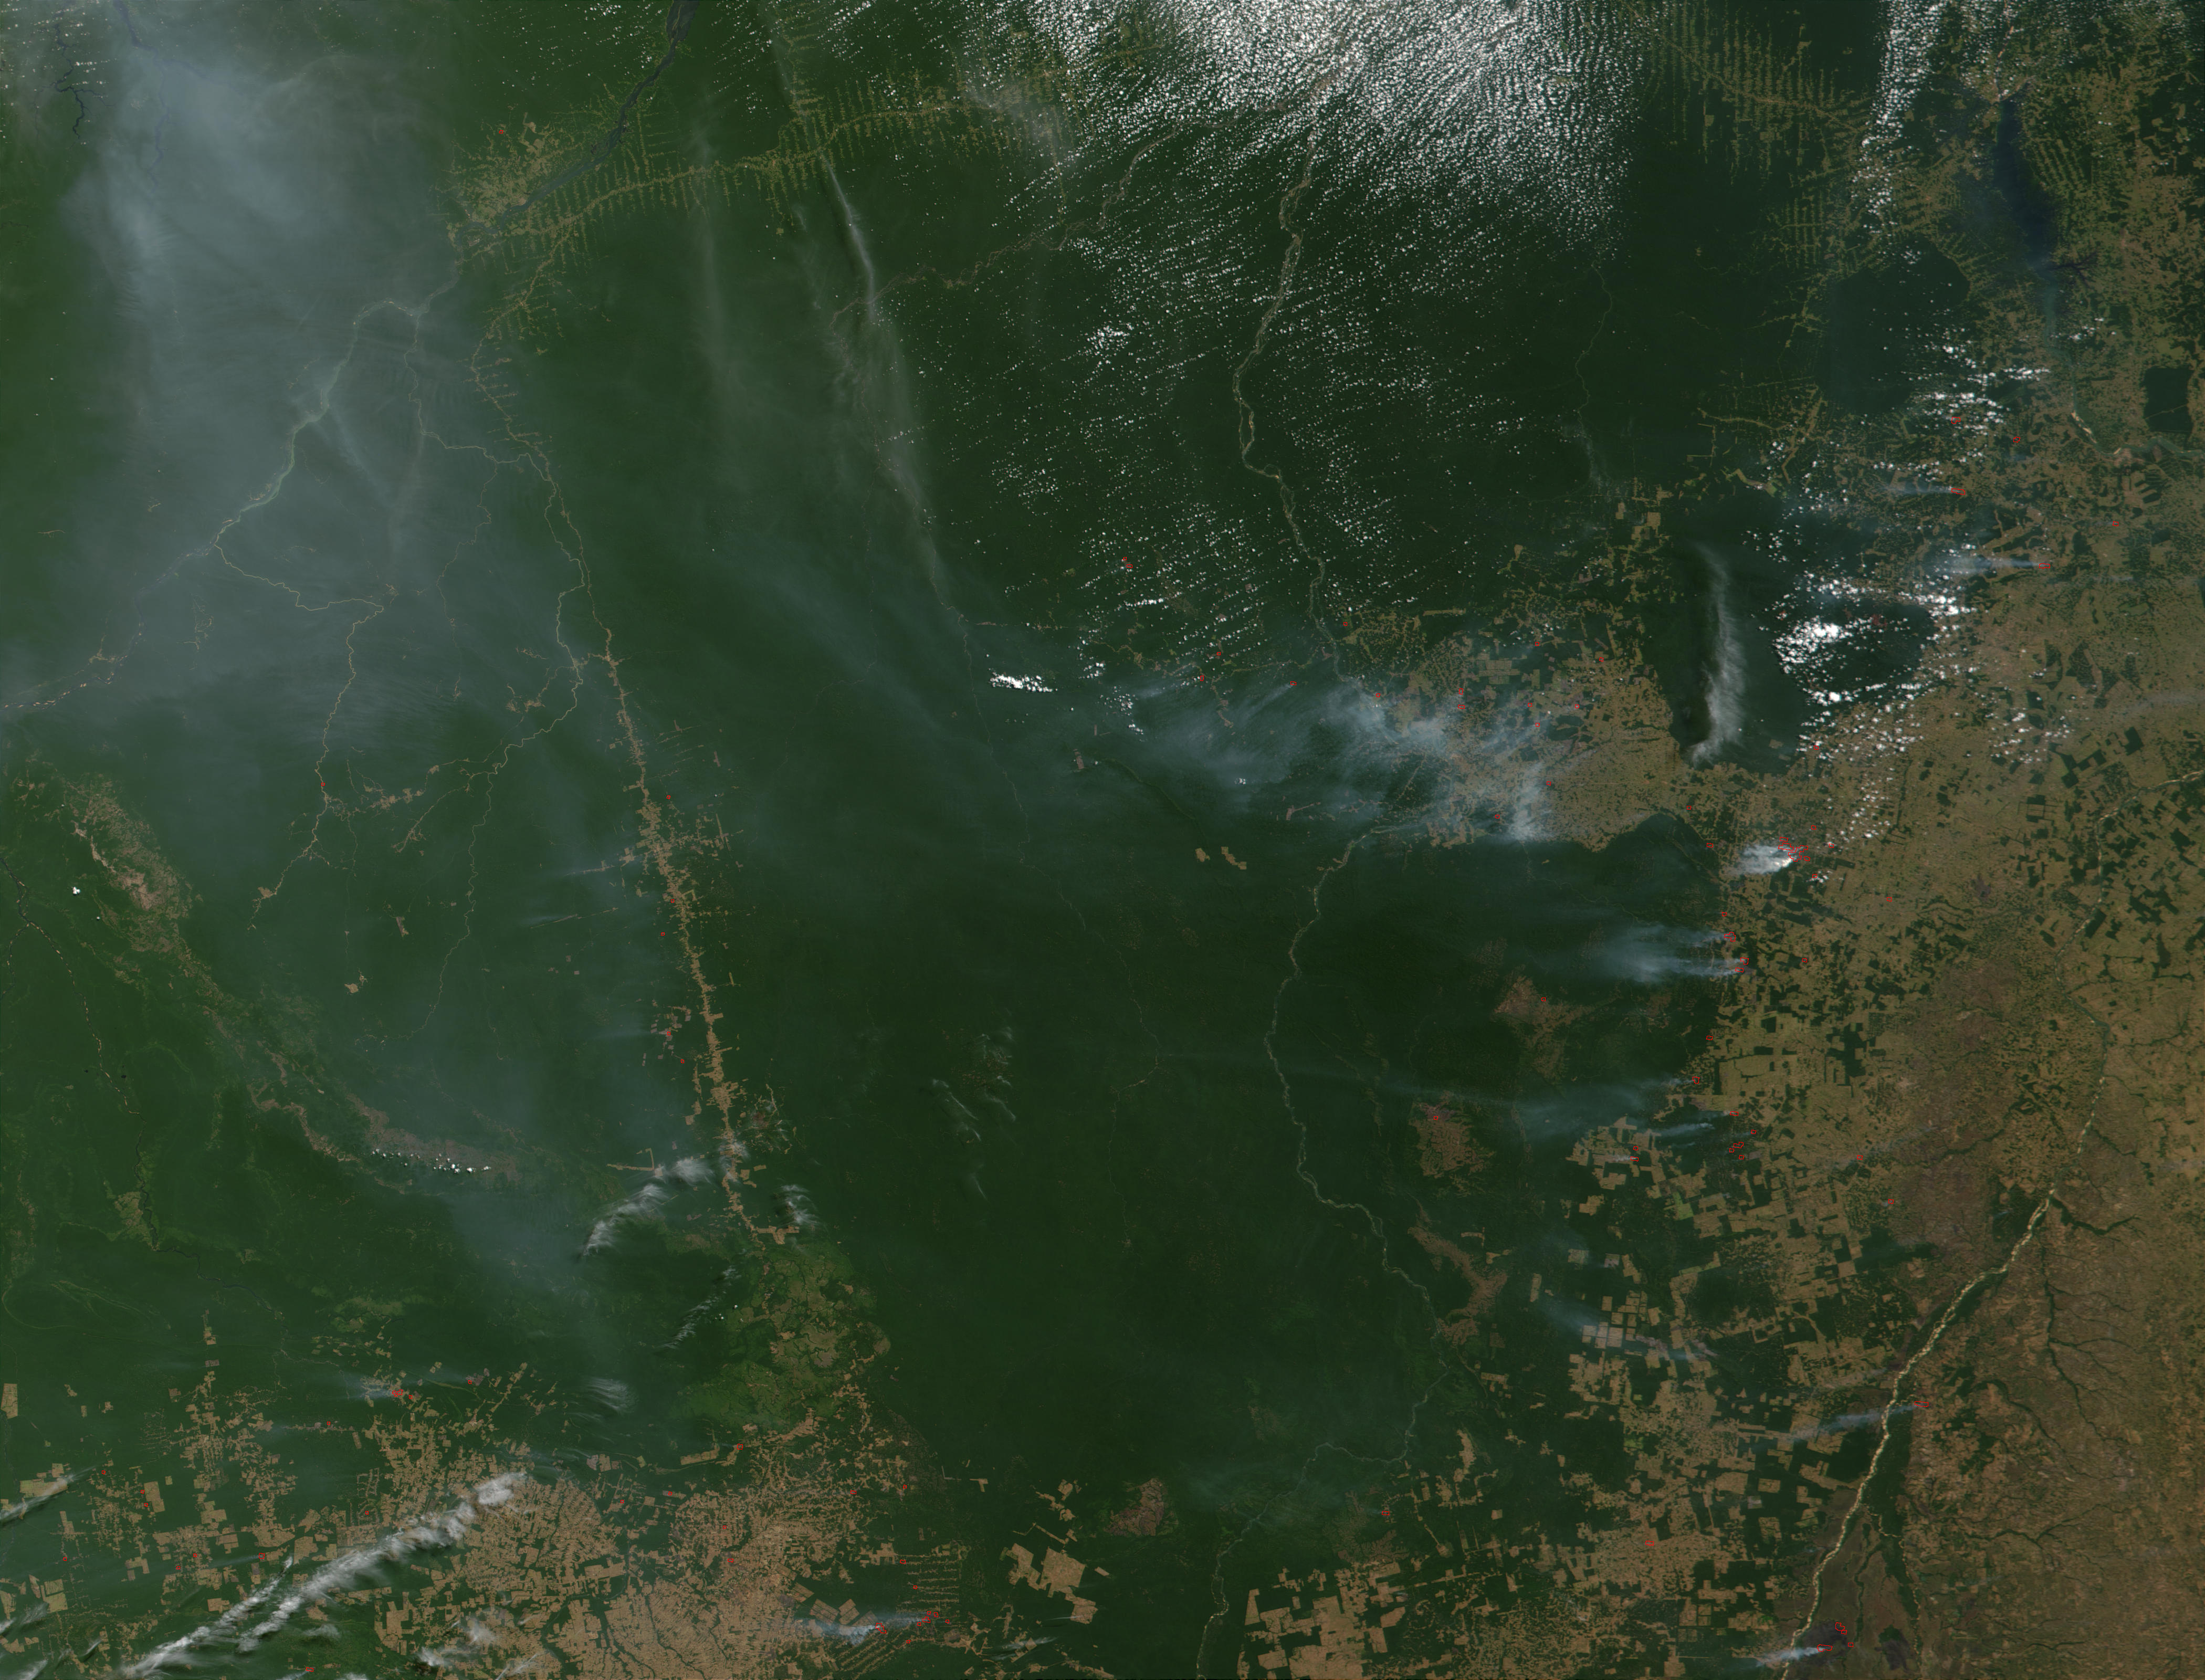 Fires and deforestation in Para state, Brazil